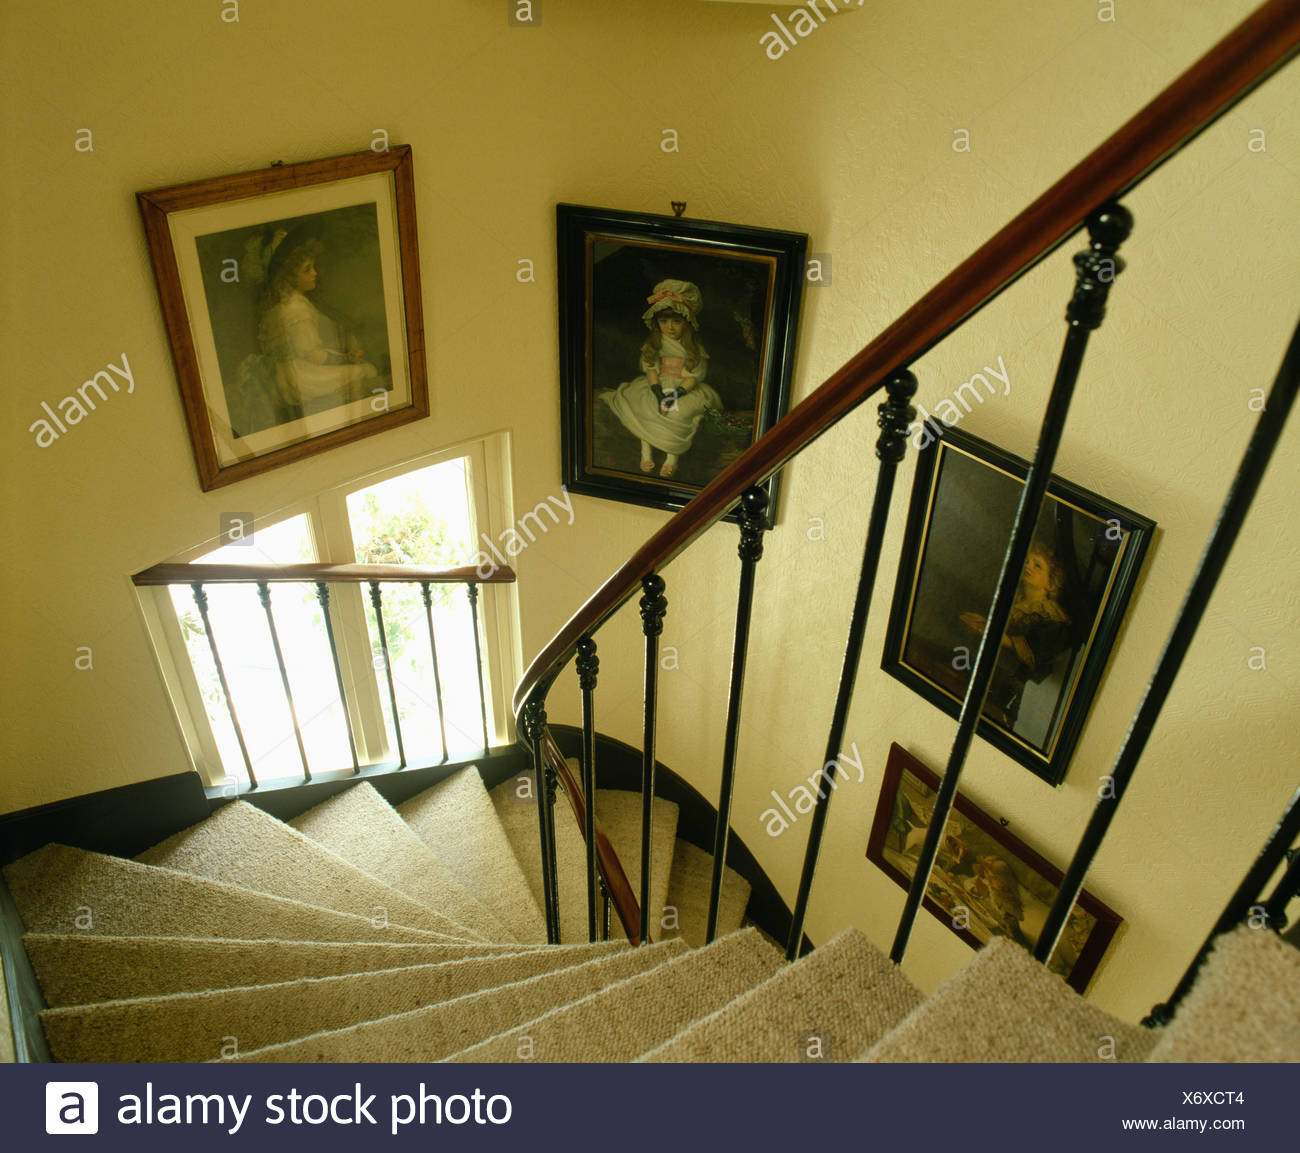 Interiors Stairs Banisters Traditional Stock Photos & Interiors ...